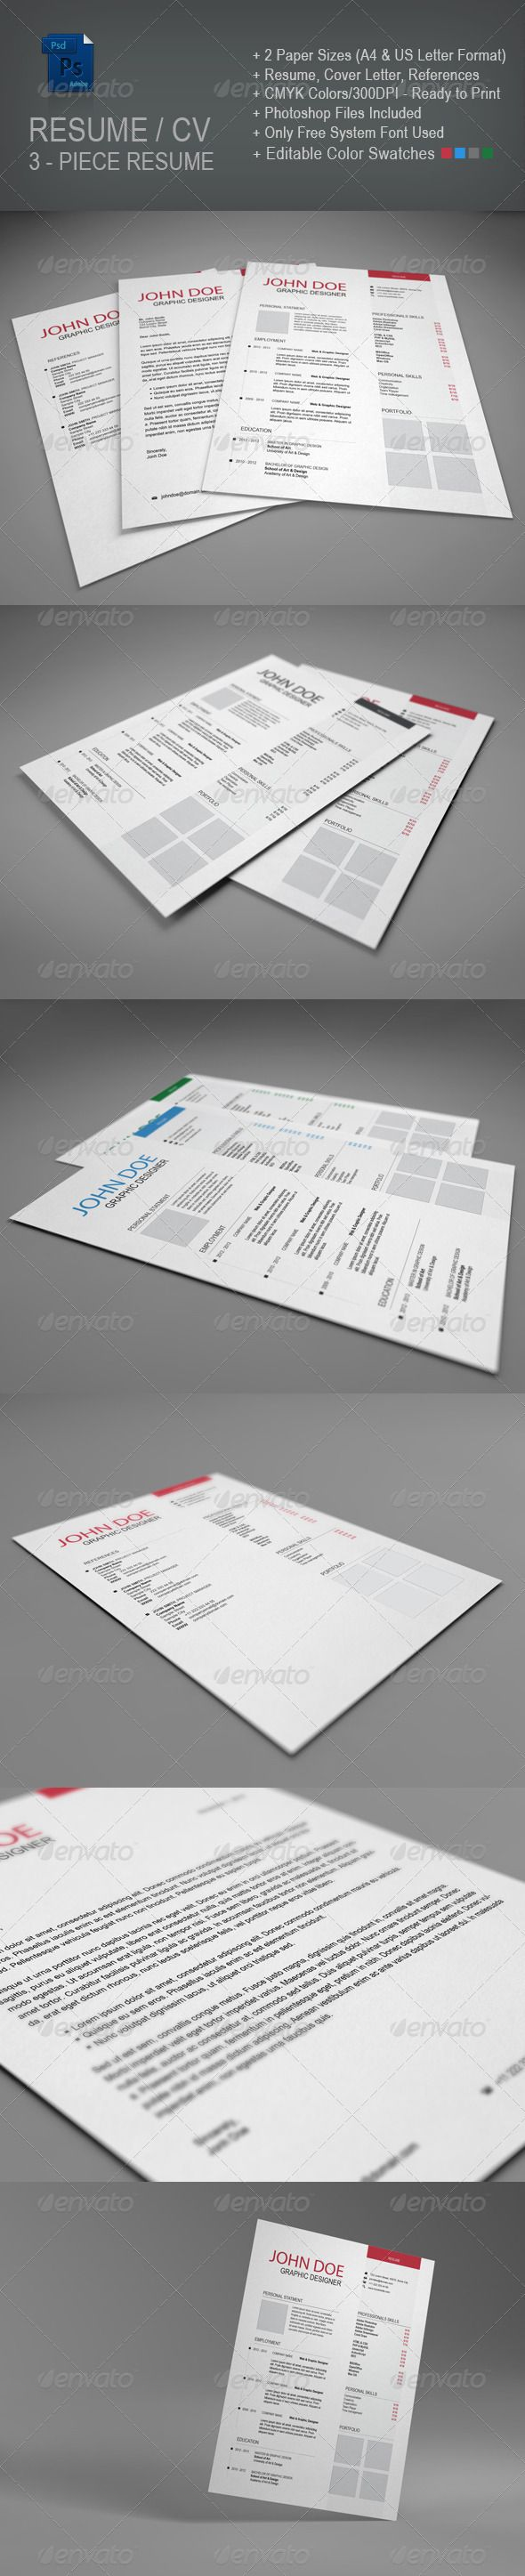 arial narrow resume template